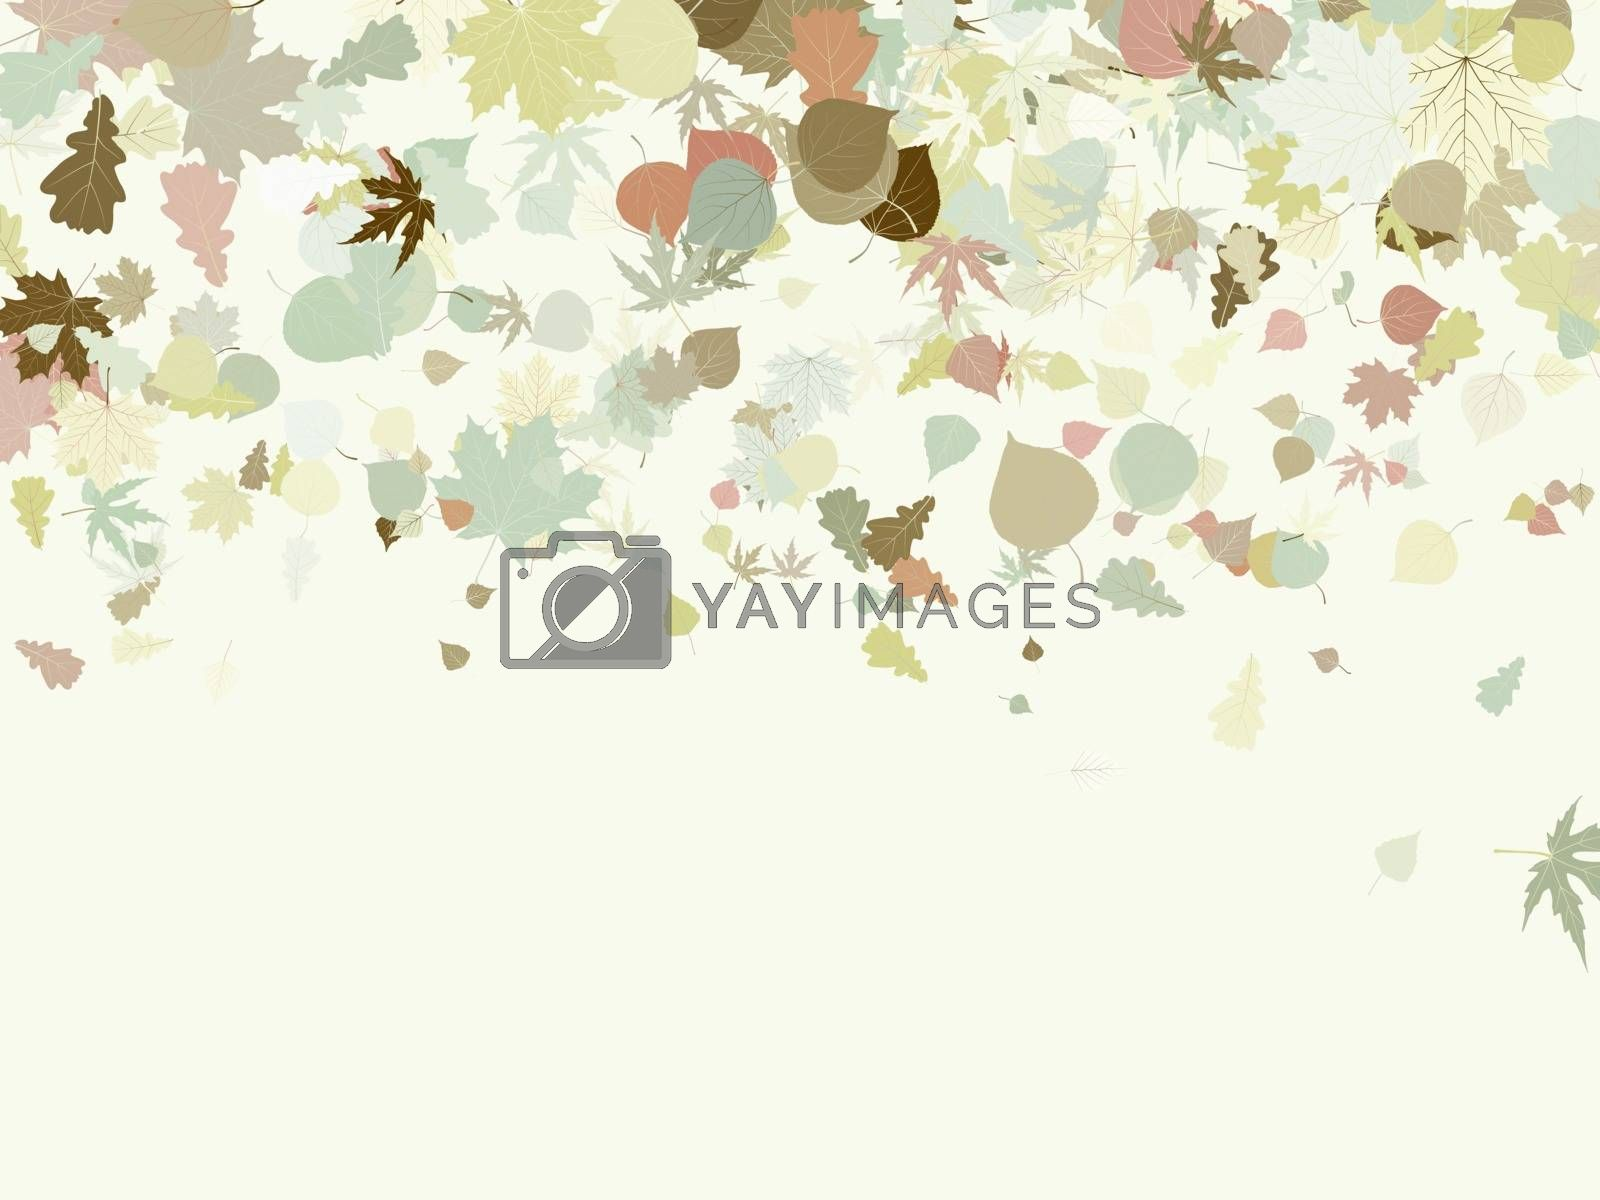 Autumn design with leafs. EPS 8 vector file included